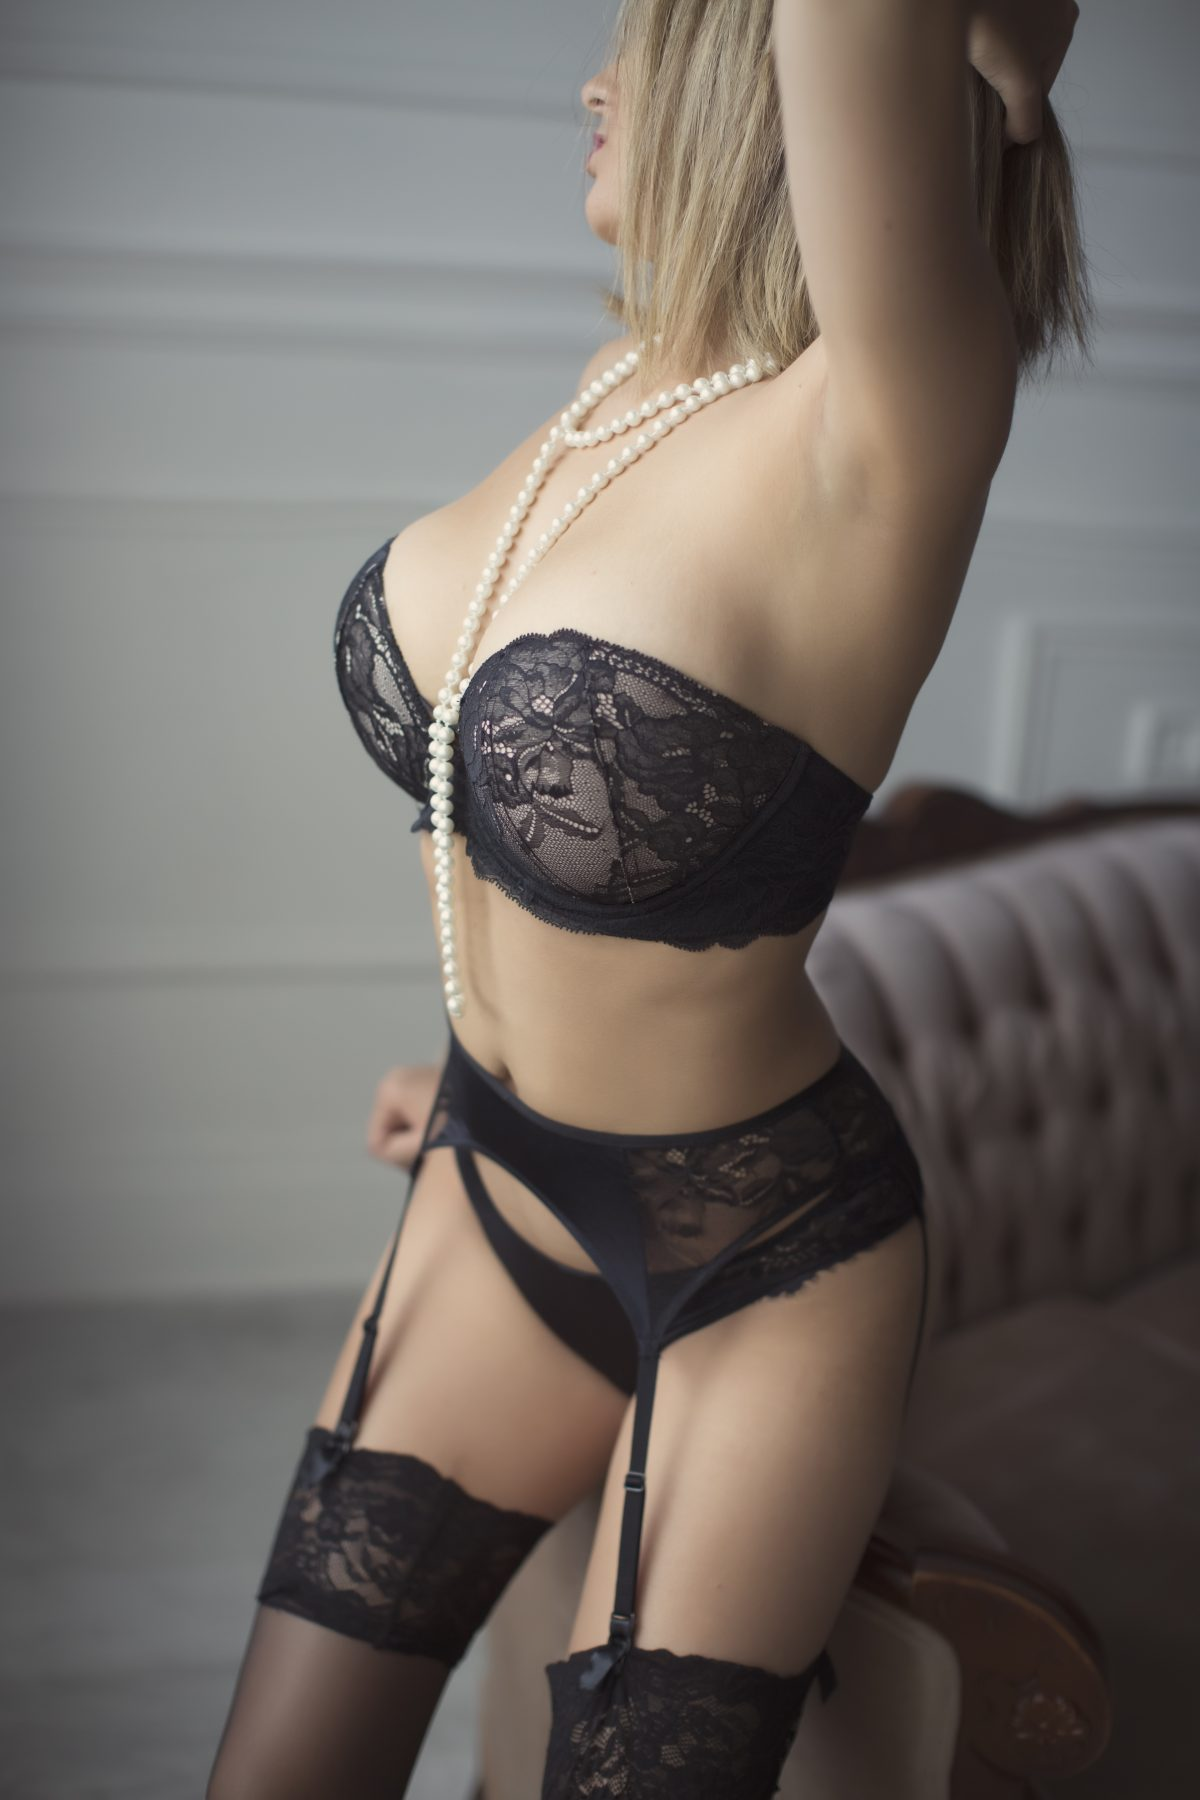 Toronto escorts companion upscale Nala Interests Disability-friendly Non-smoking Age Young Figure Slender Petite Breasts Natural Hair Blonde Ethnicity European Tattoos None Arrival New